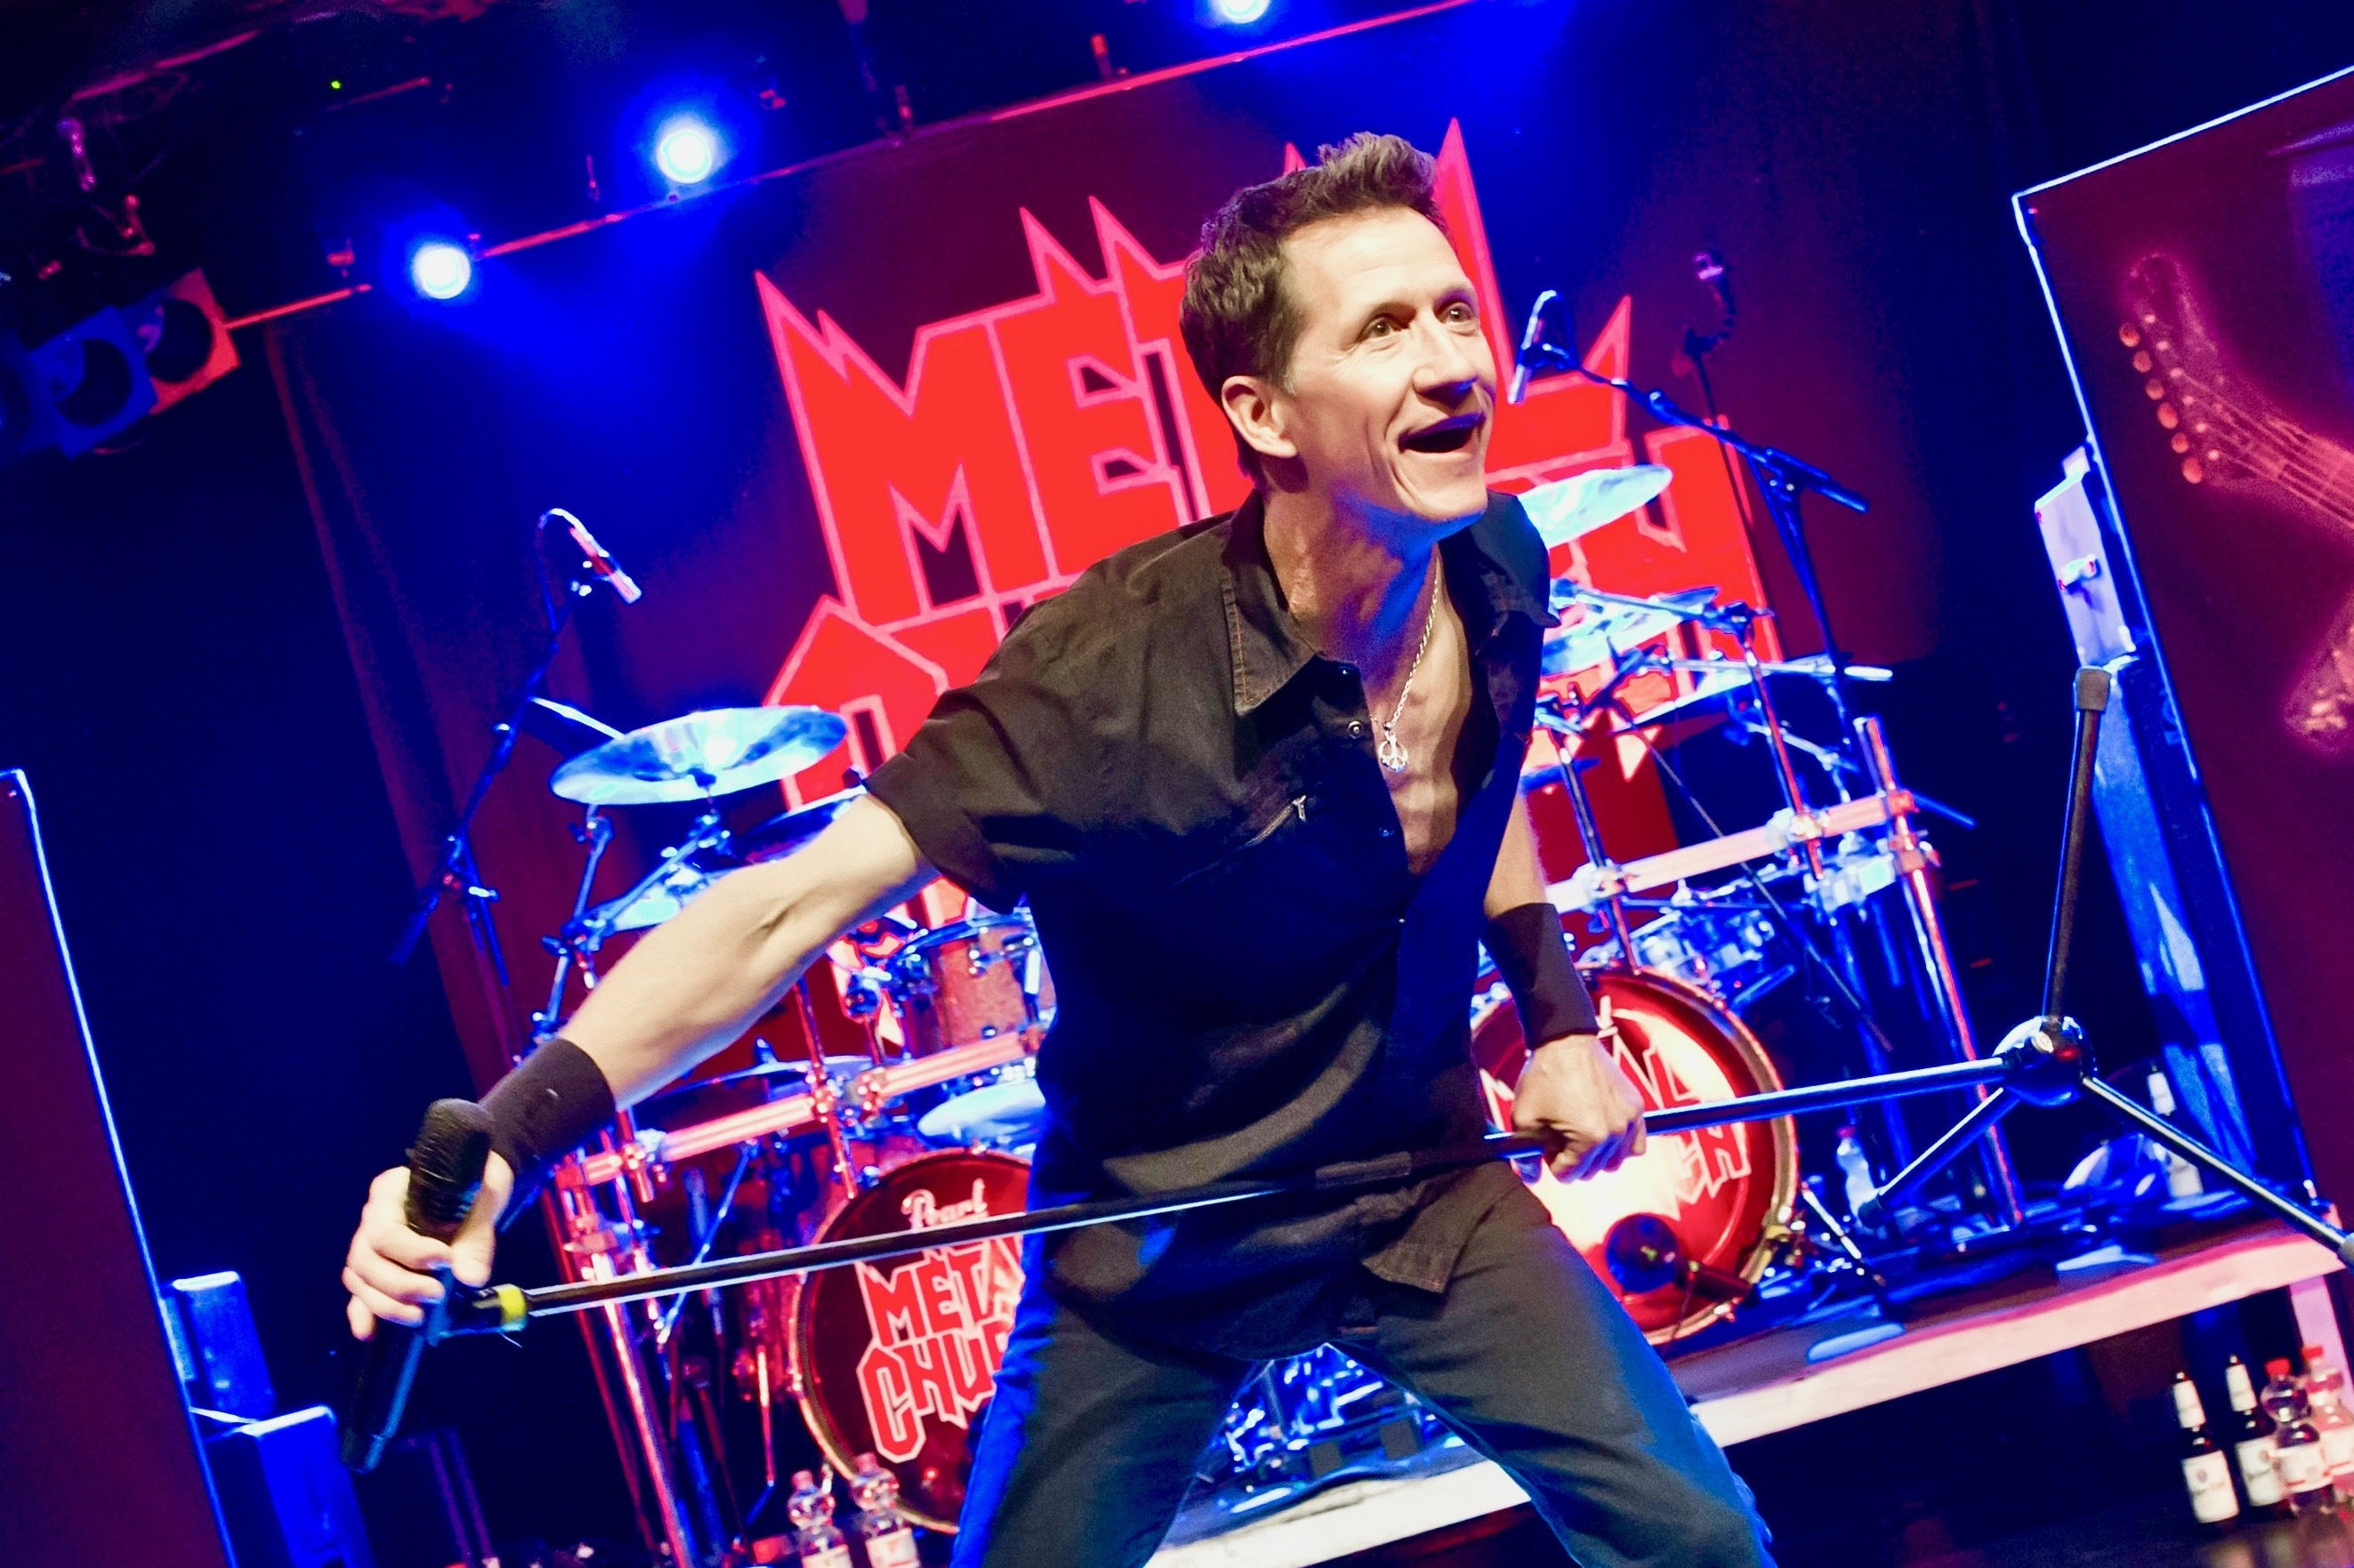 Tributes Paid to Metal Church Singer Mike Howe as He Dies Aged 55